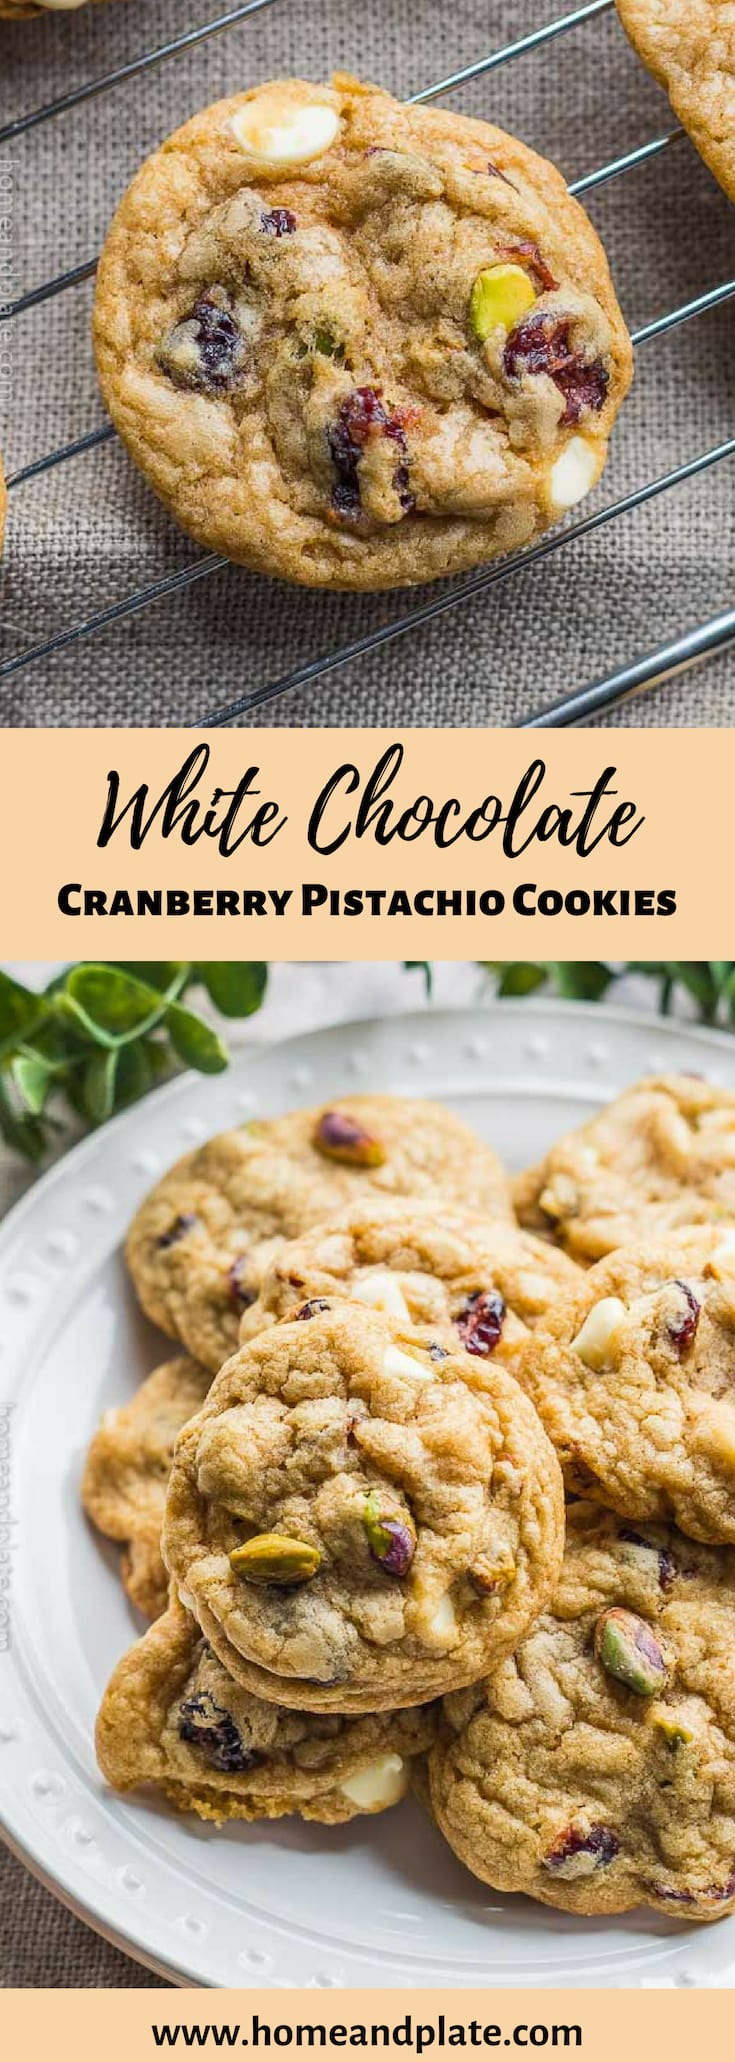 White Chocolate Cranberry Pistachio Cookies   Crispy along the edges and chewy in the center, these white chocolate cranberry pistachio cookies are perfect for the holidays. #christmascookies #pistachiocookies #cranberrywhitechocolatecookies #cranberrypistachiocookies